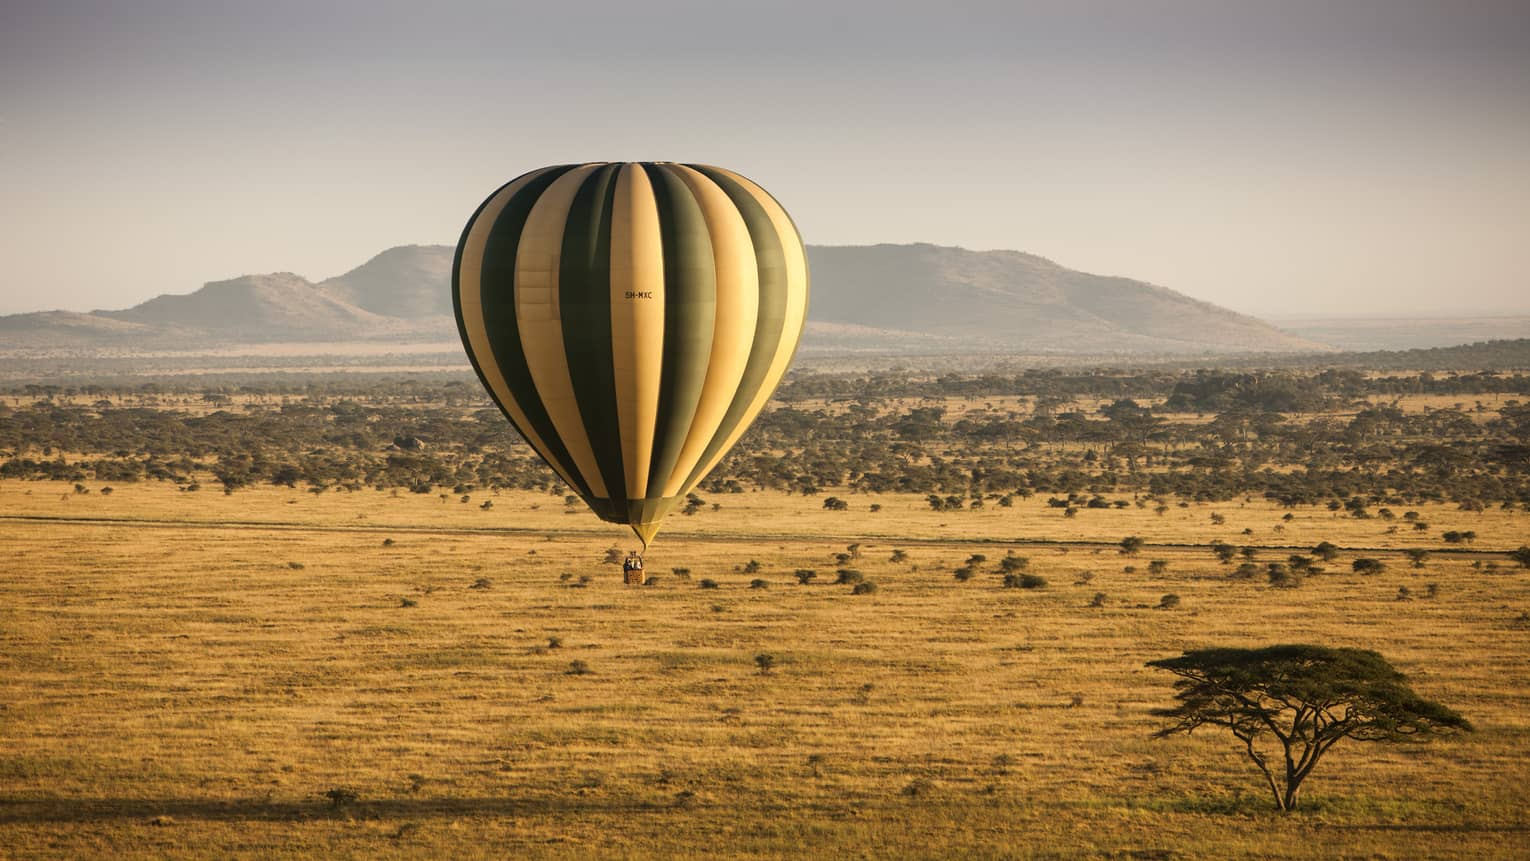 Stripped hot air balloon hovers over landscape of Serengeti, mountain in background